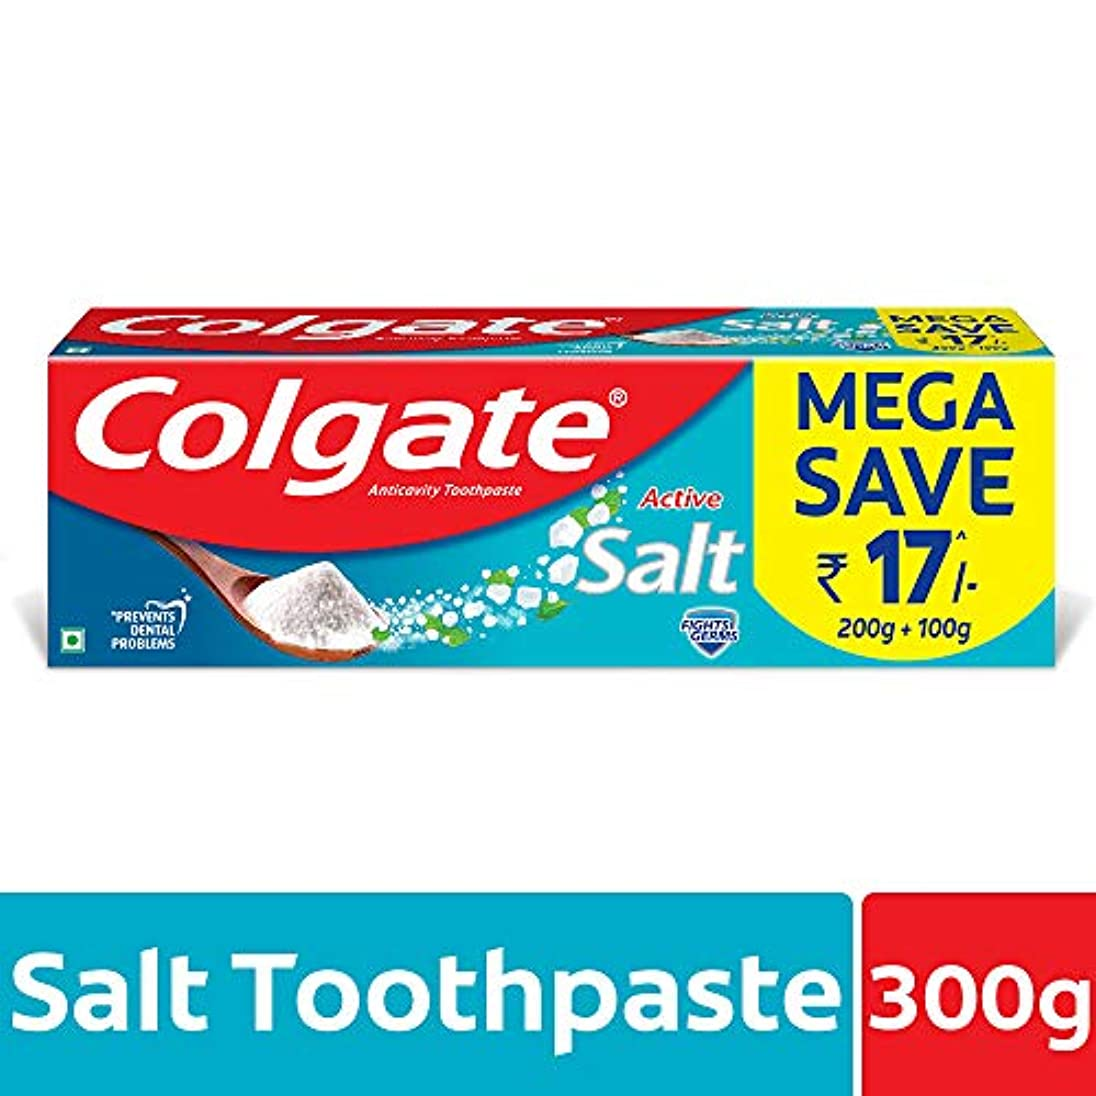 行進ミルクところでColgate Active Salt Toothpaste, 300gm(200gm + 100gm)